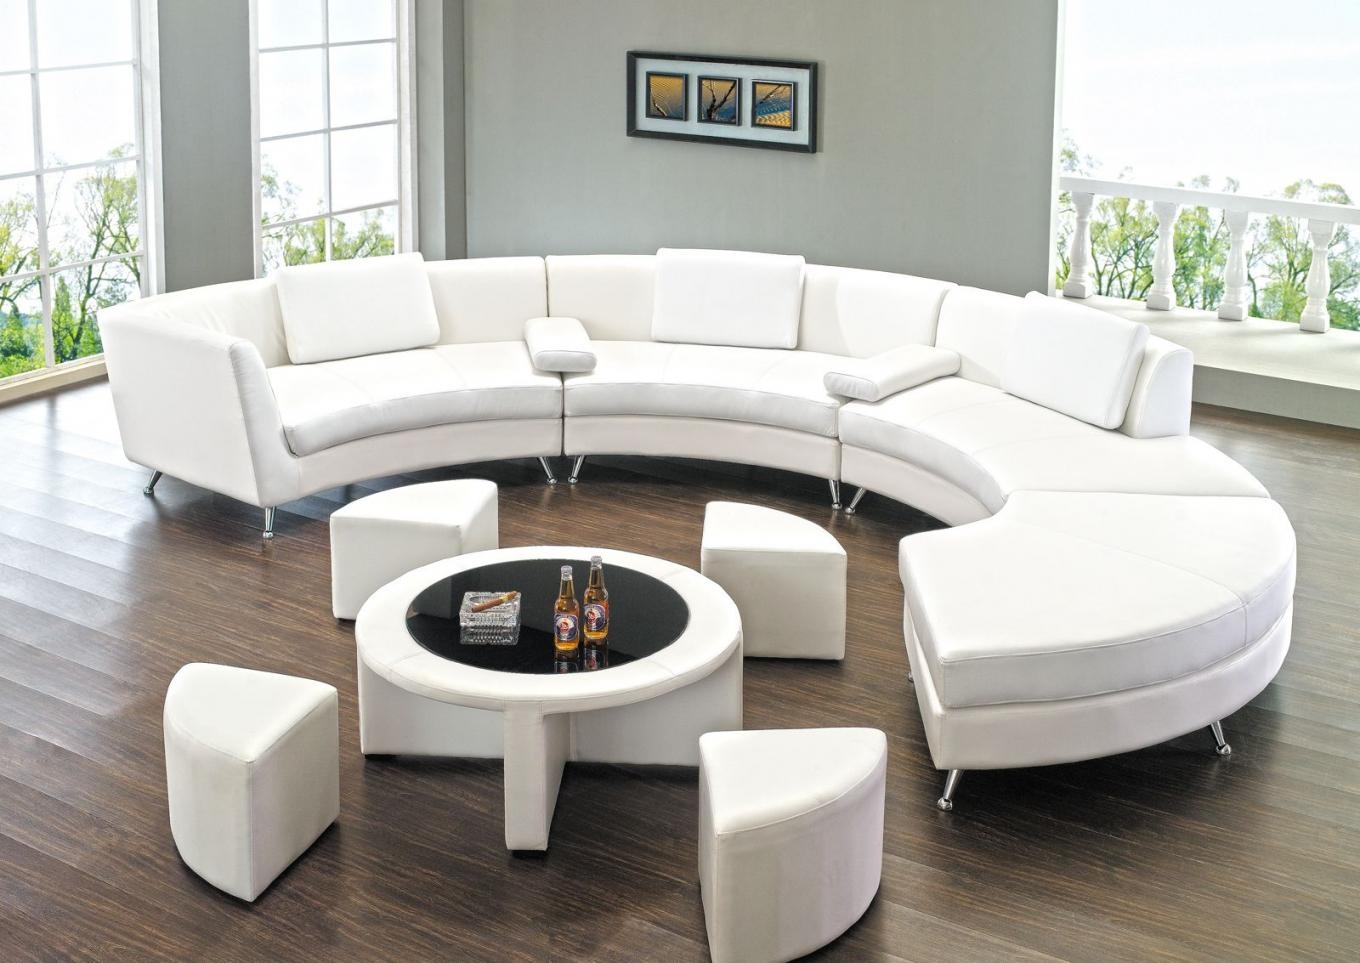 Round Sectional Sofa Bed With Round Sectional Sofa Bed (View 2 of 20)